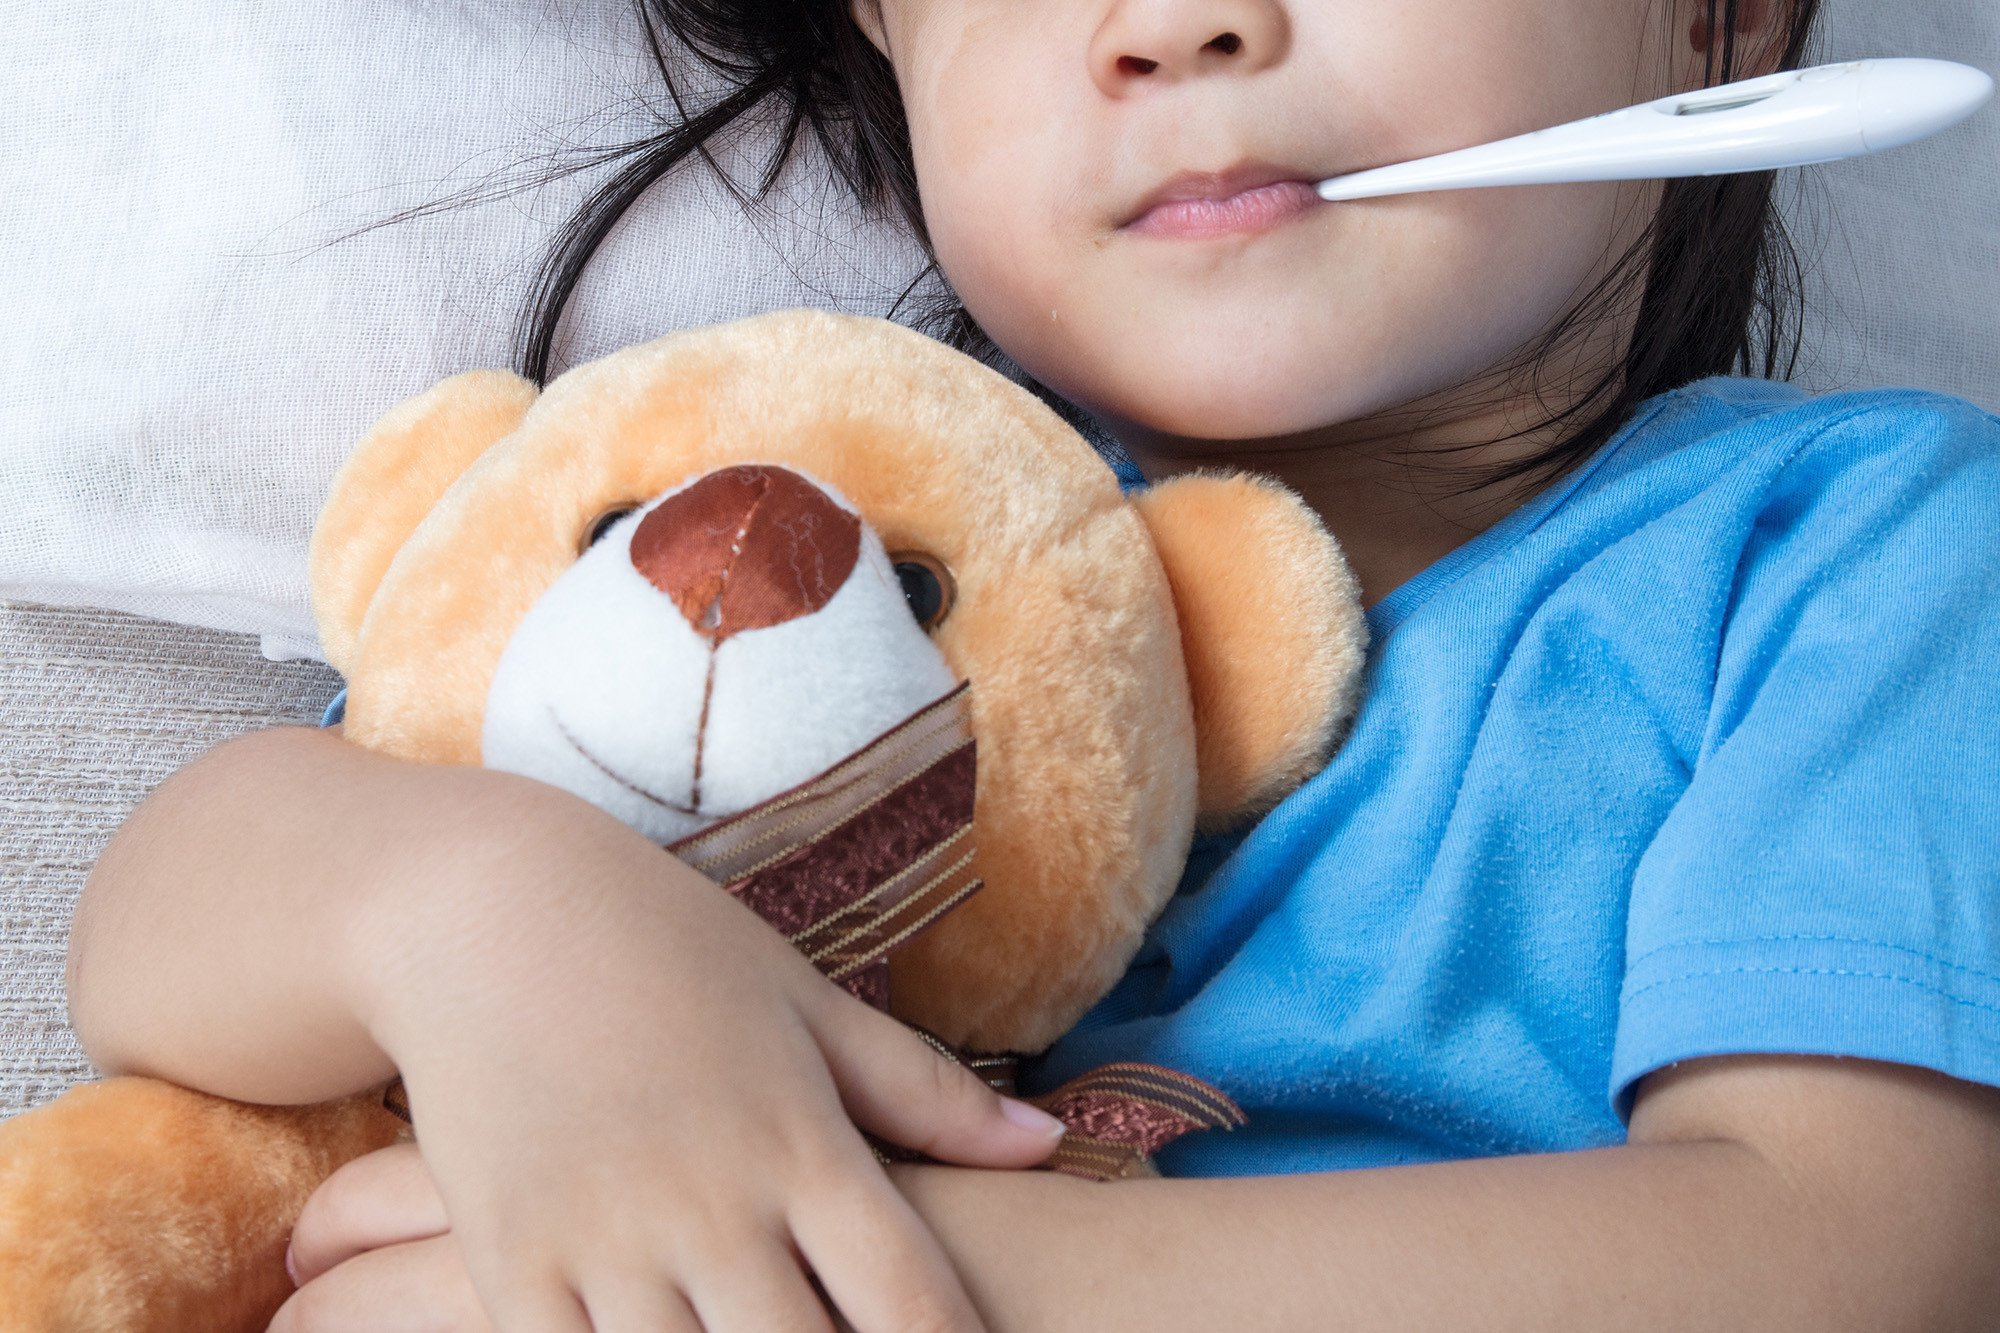 Flu epidemic has already killed 30 kids and hasn't peaked yet